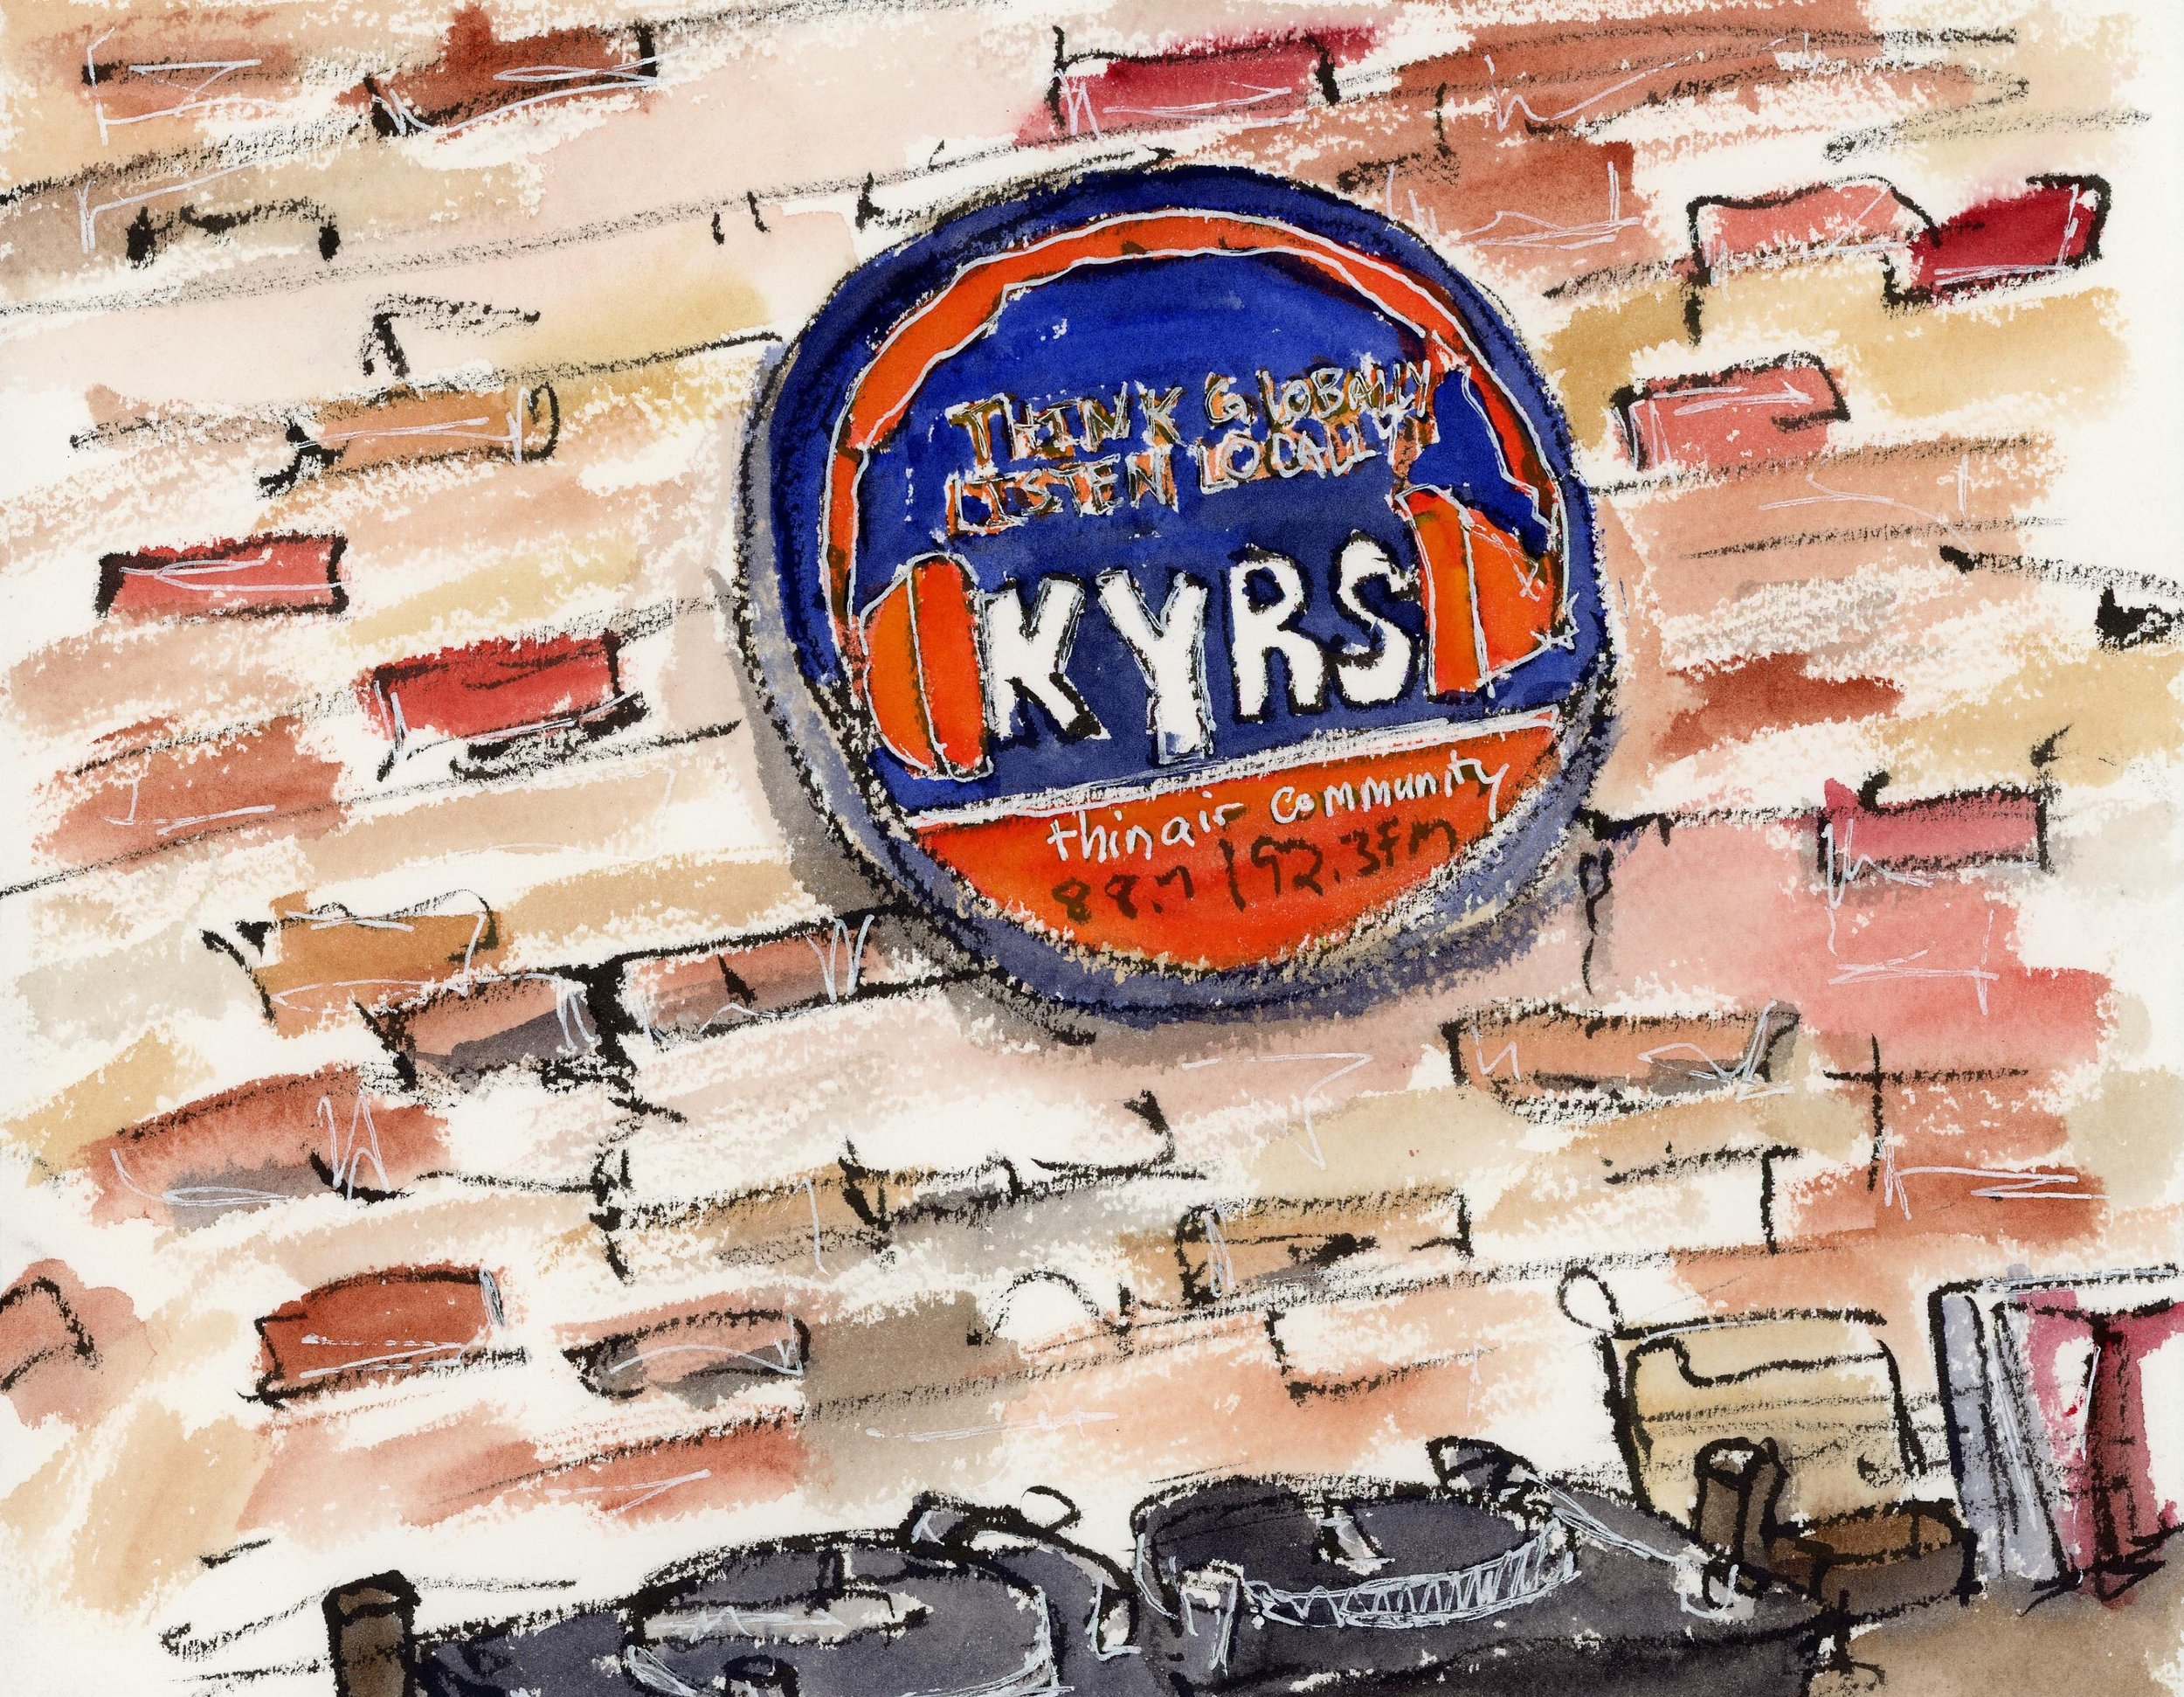 KYRS is inside the Community Building down on Main Street, one of the many lovely brick buildings in town and I loved that they left the interior walls as the rough brick. There are so many different colors and shades to brick! Just delightful.